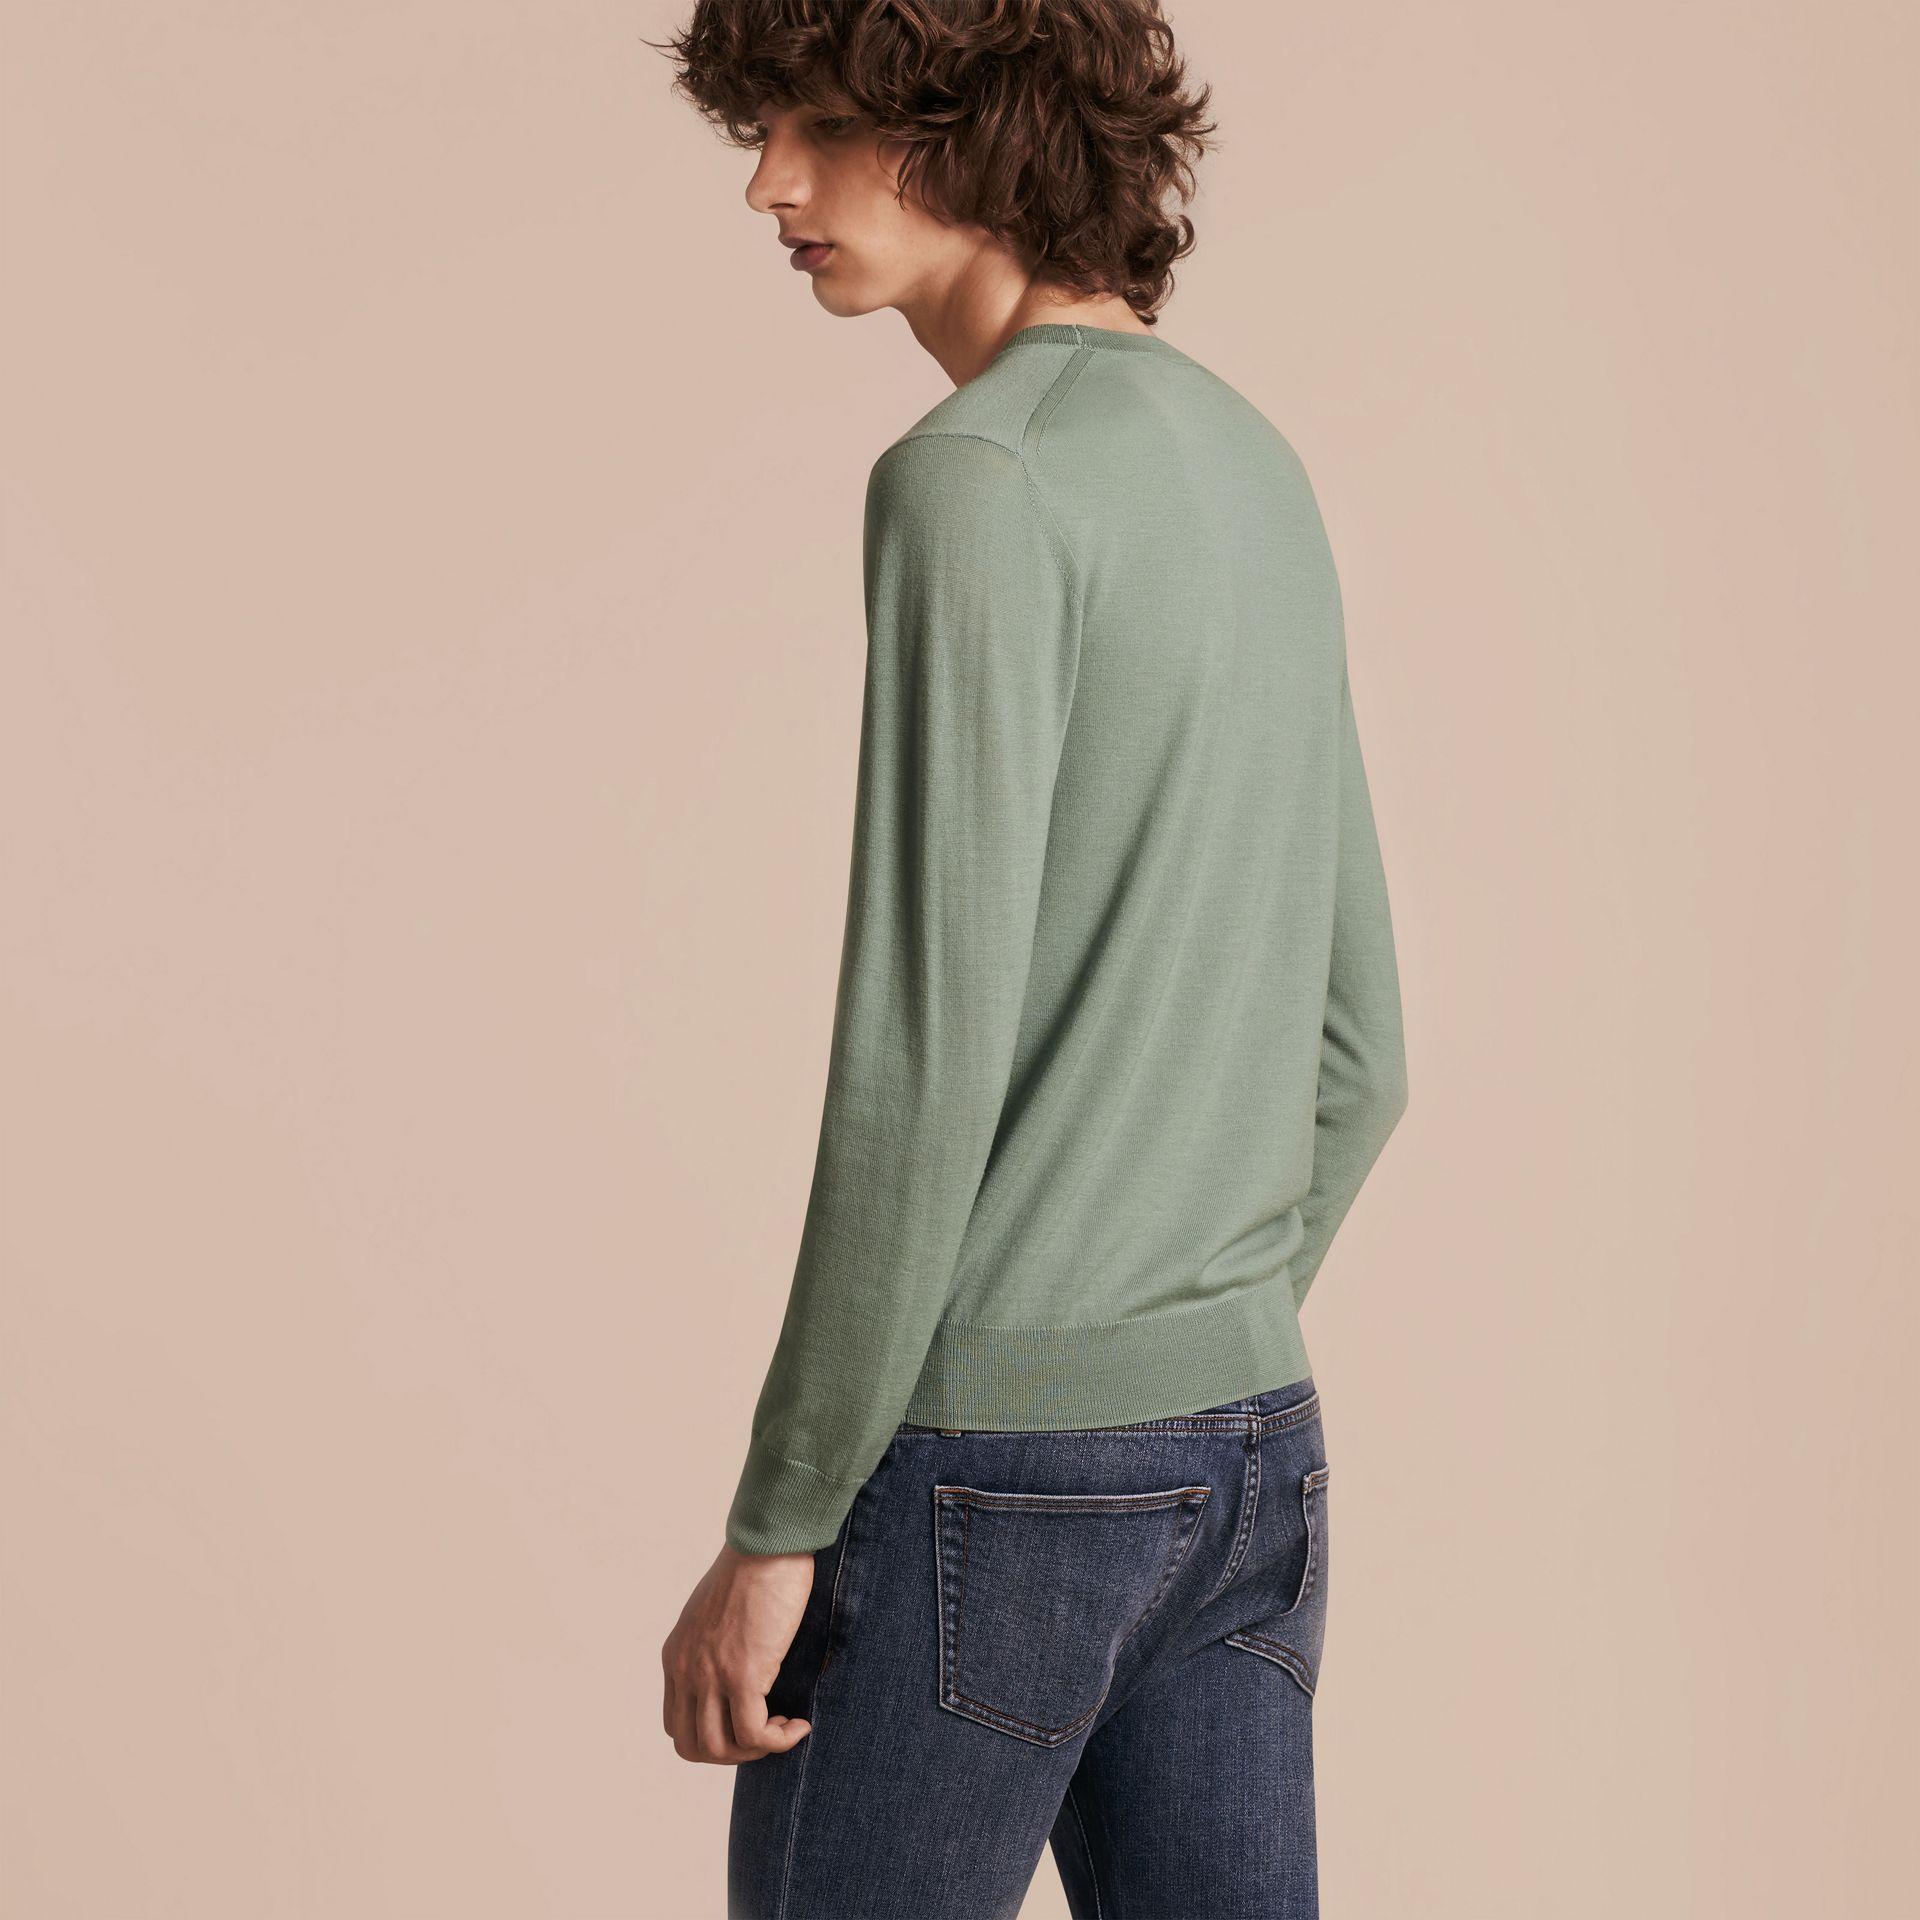 Eucalyptus green Crew Neck Merino Wool Sweater Eucalyptus Green - gallery image 3